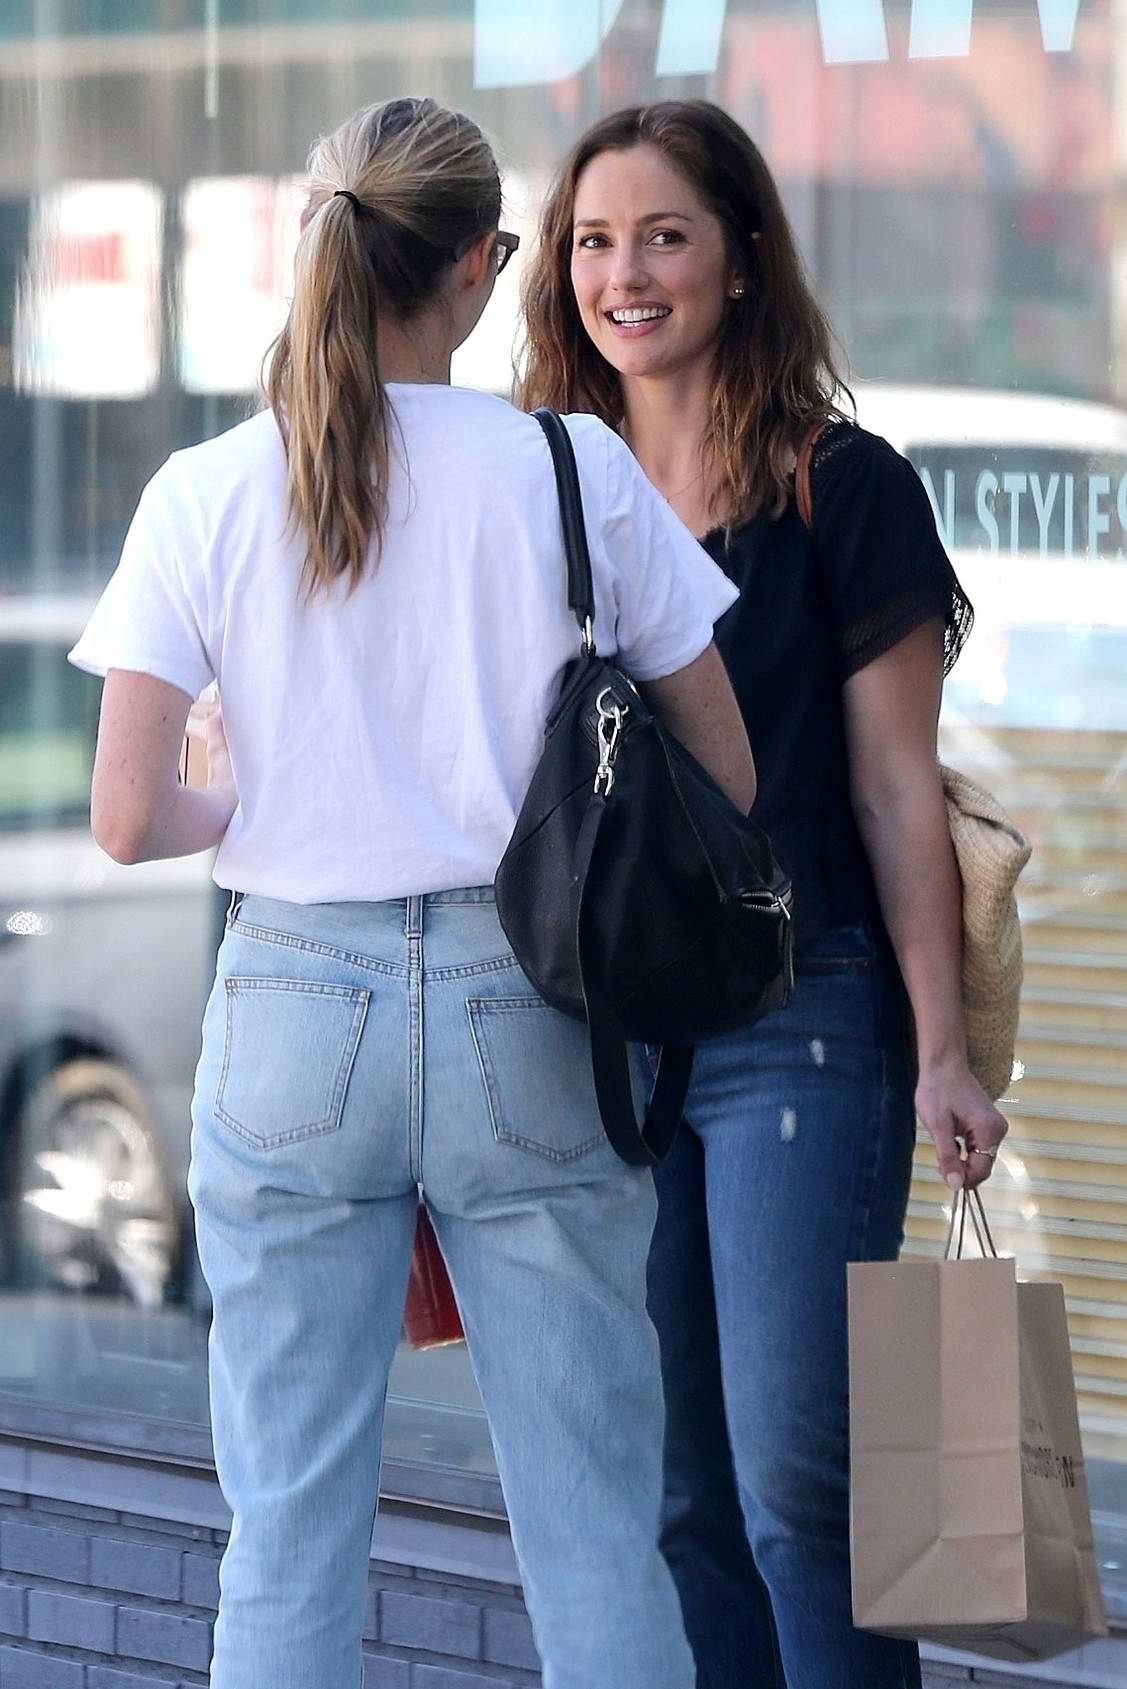 Minka Kelly catches up with a friend over lunch at Sycamore Kitchen in Hollywood, Los Angeles